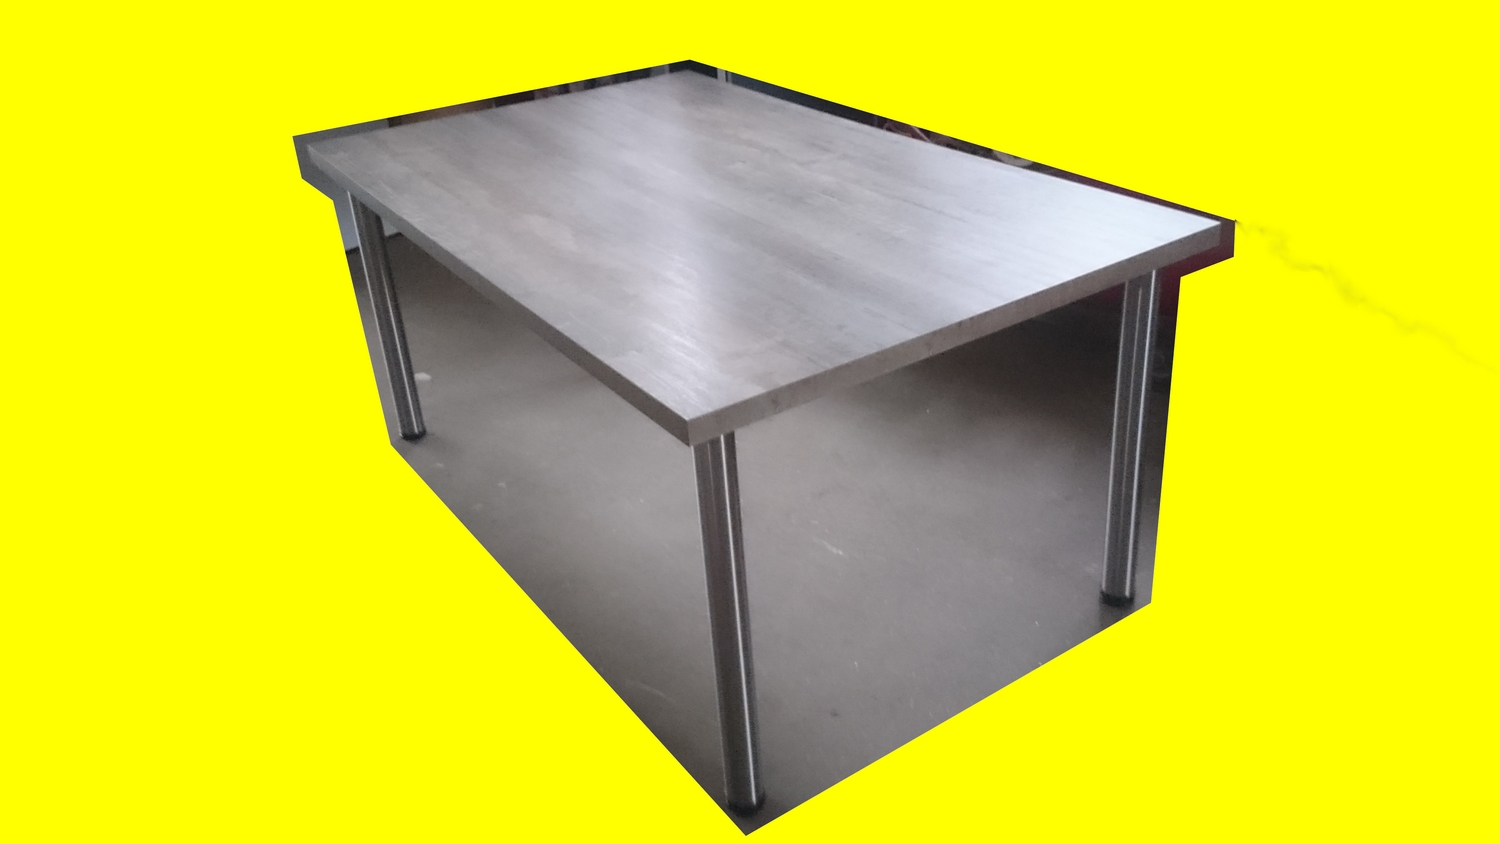 table de cuisine amenagee neuf 165x100 cm maison